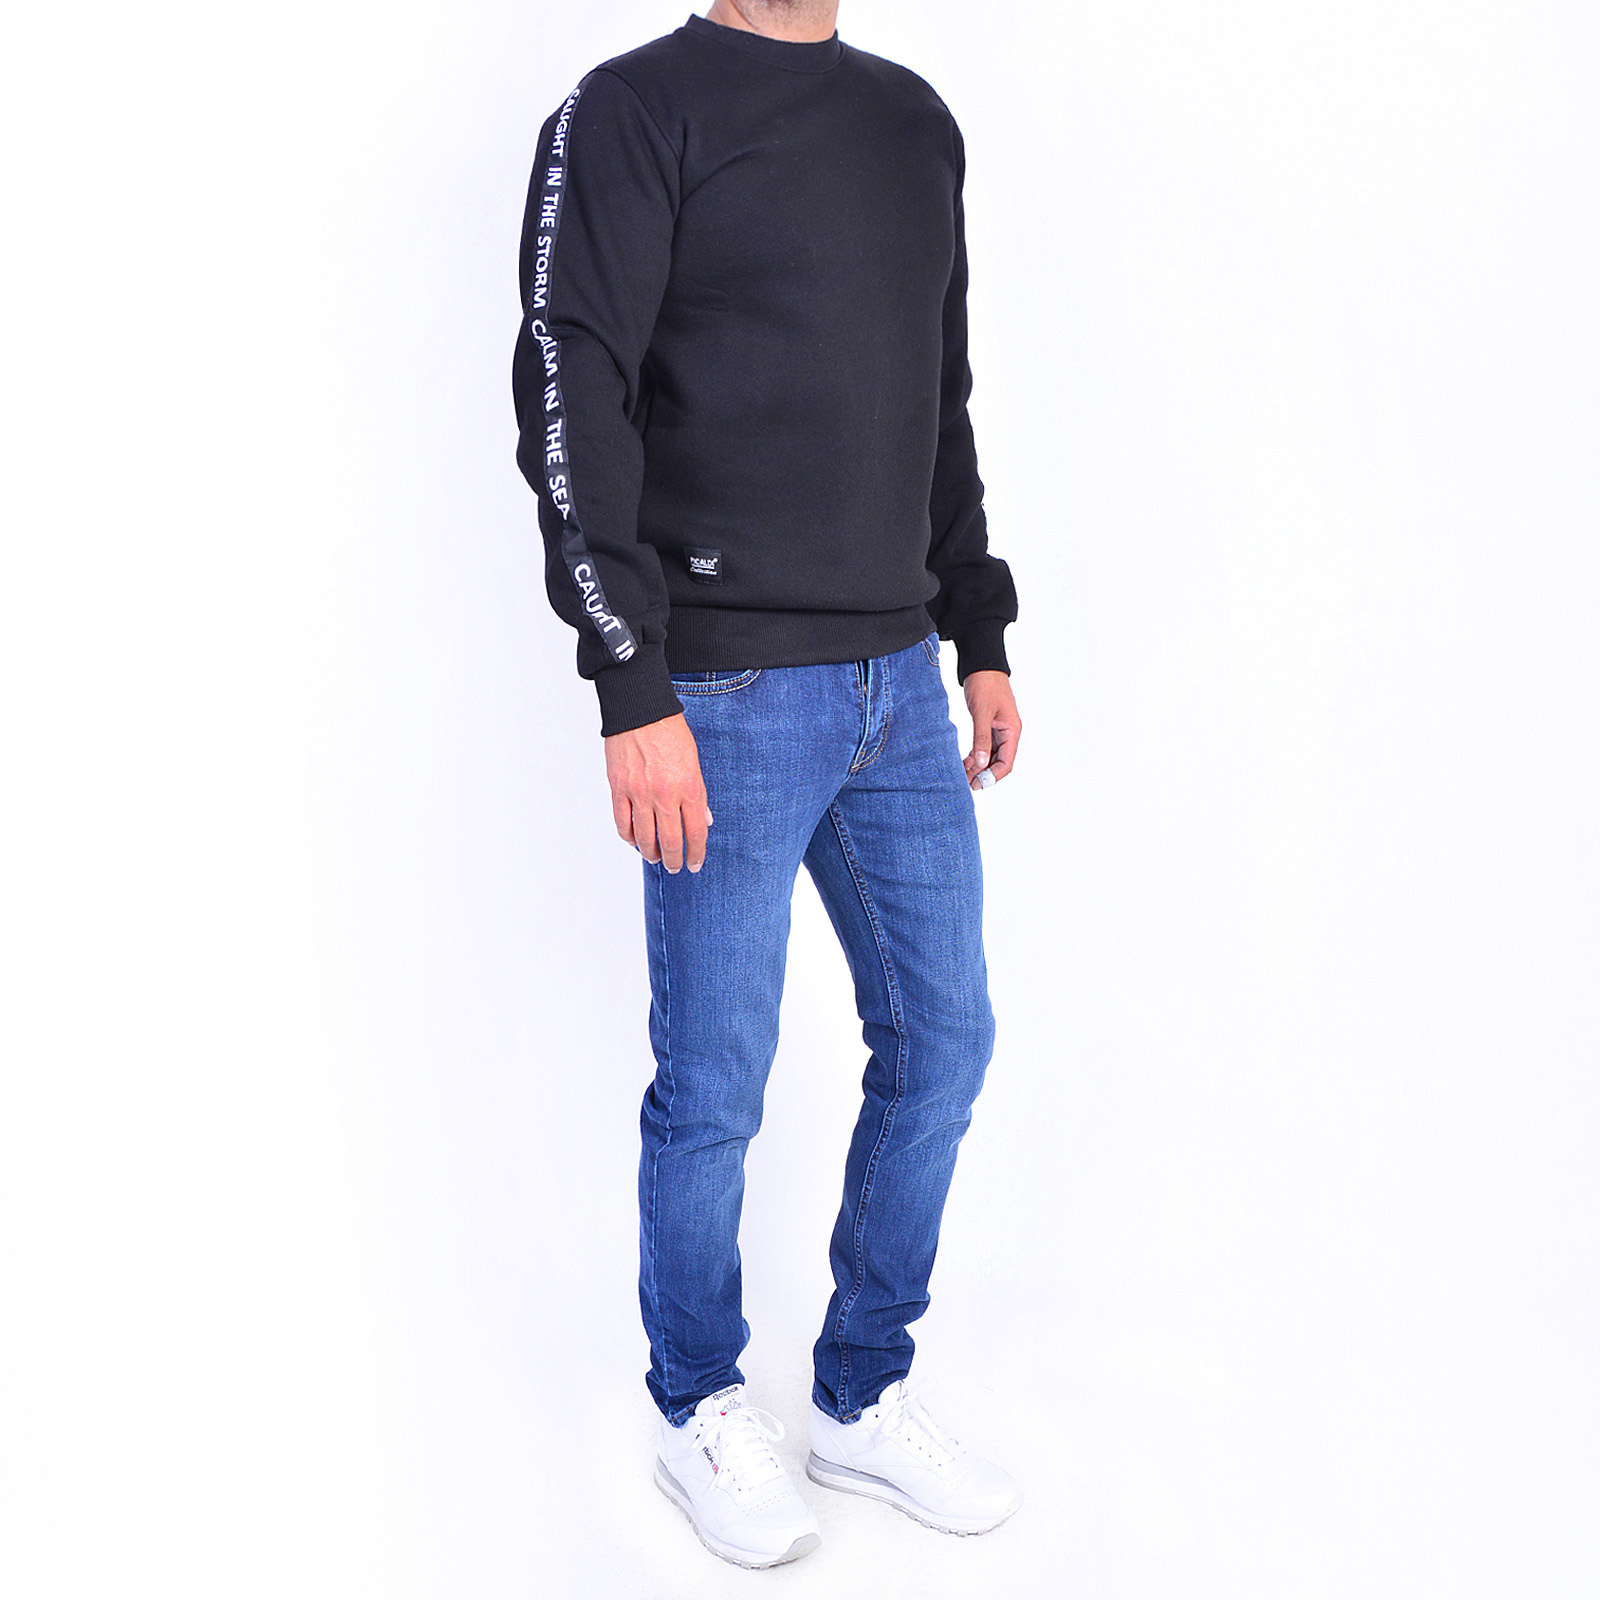 Picaldi PCLD Skinny 124 - Unchained